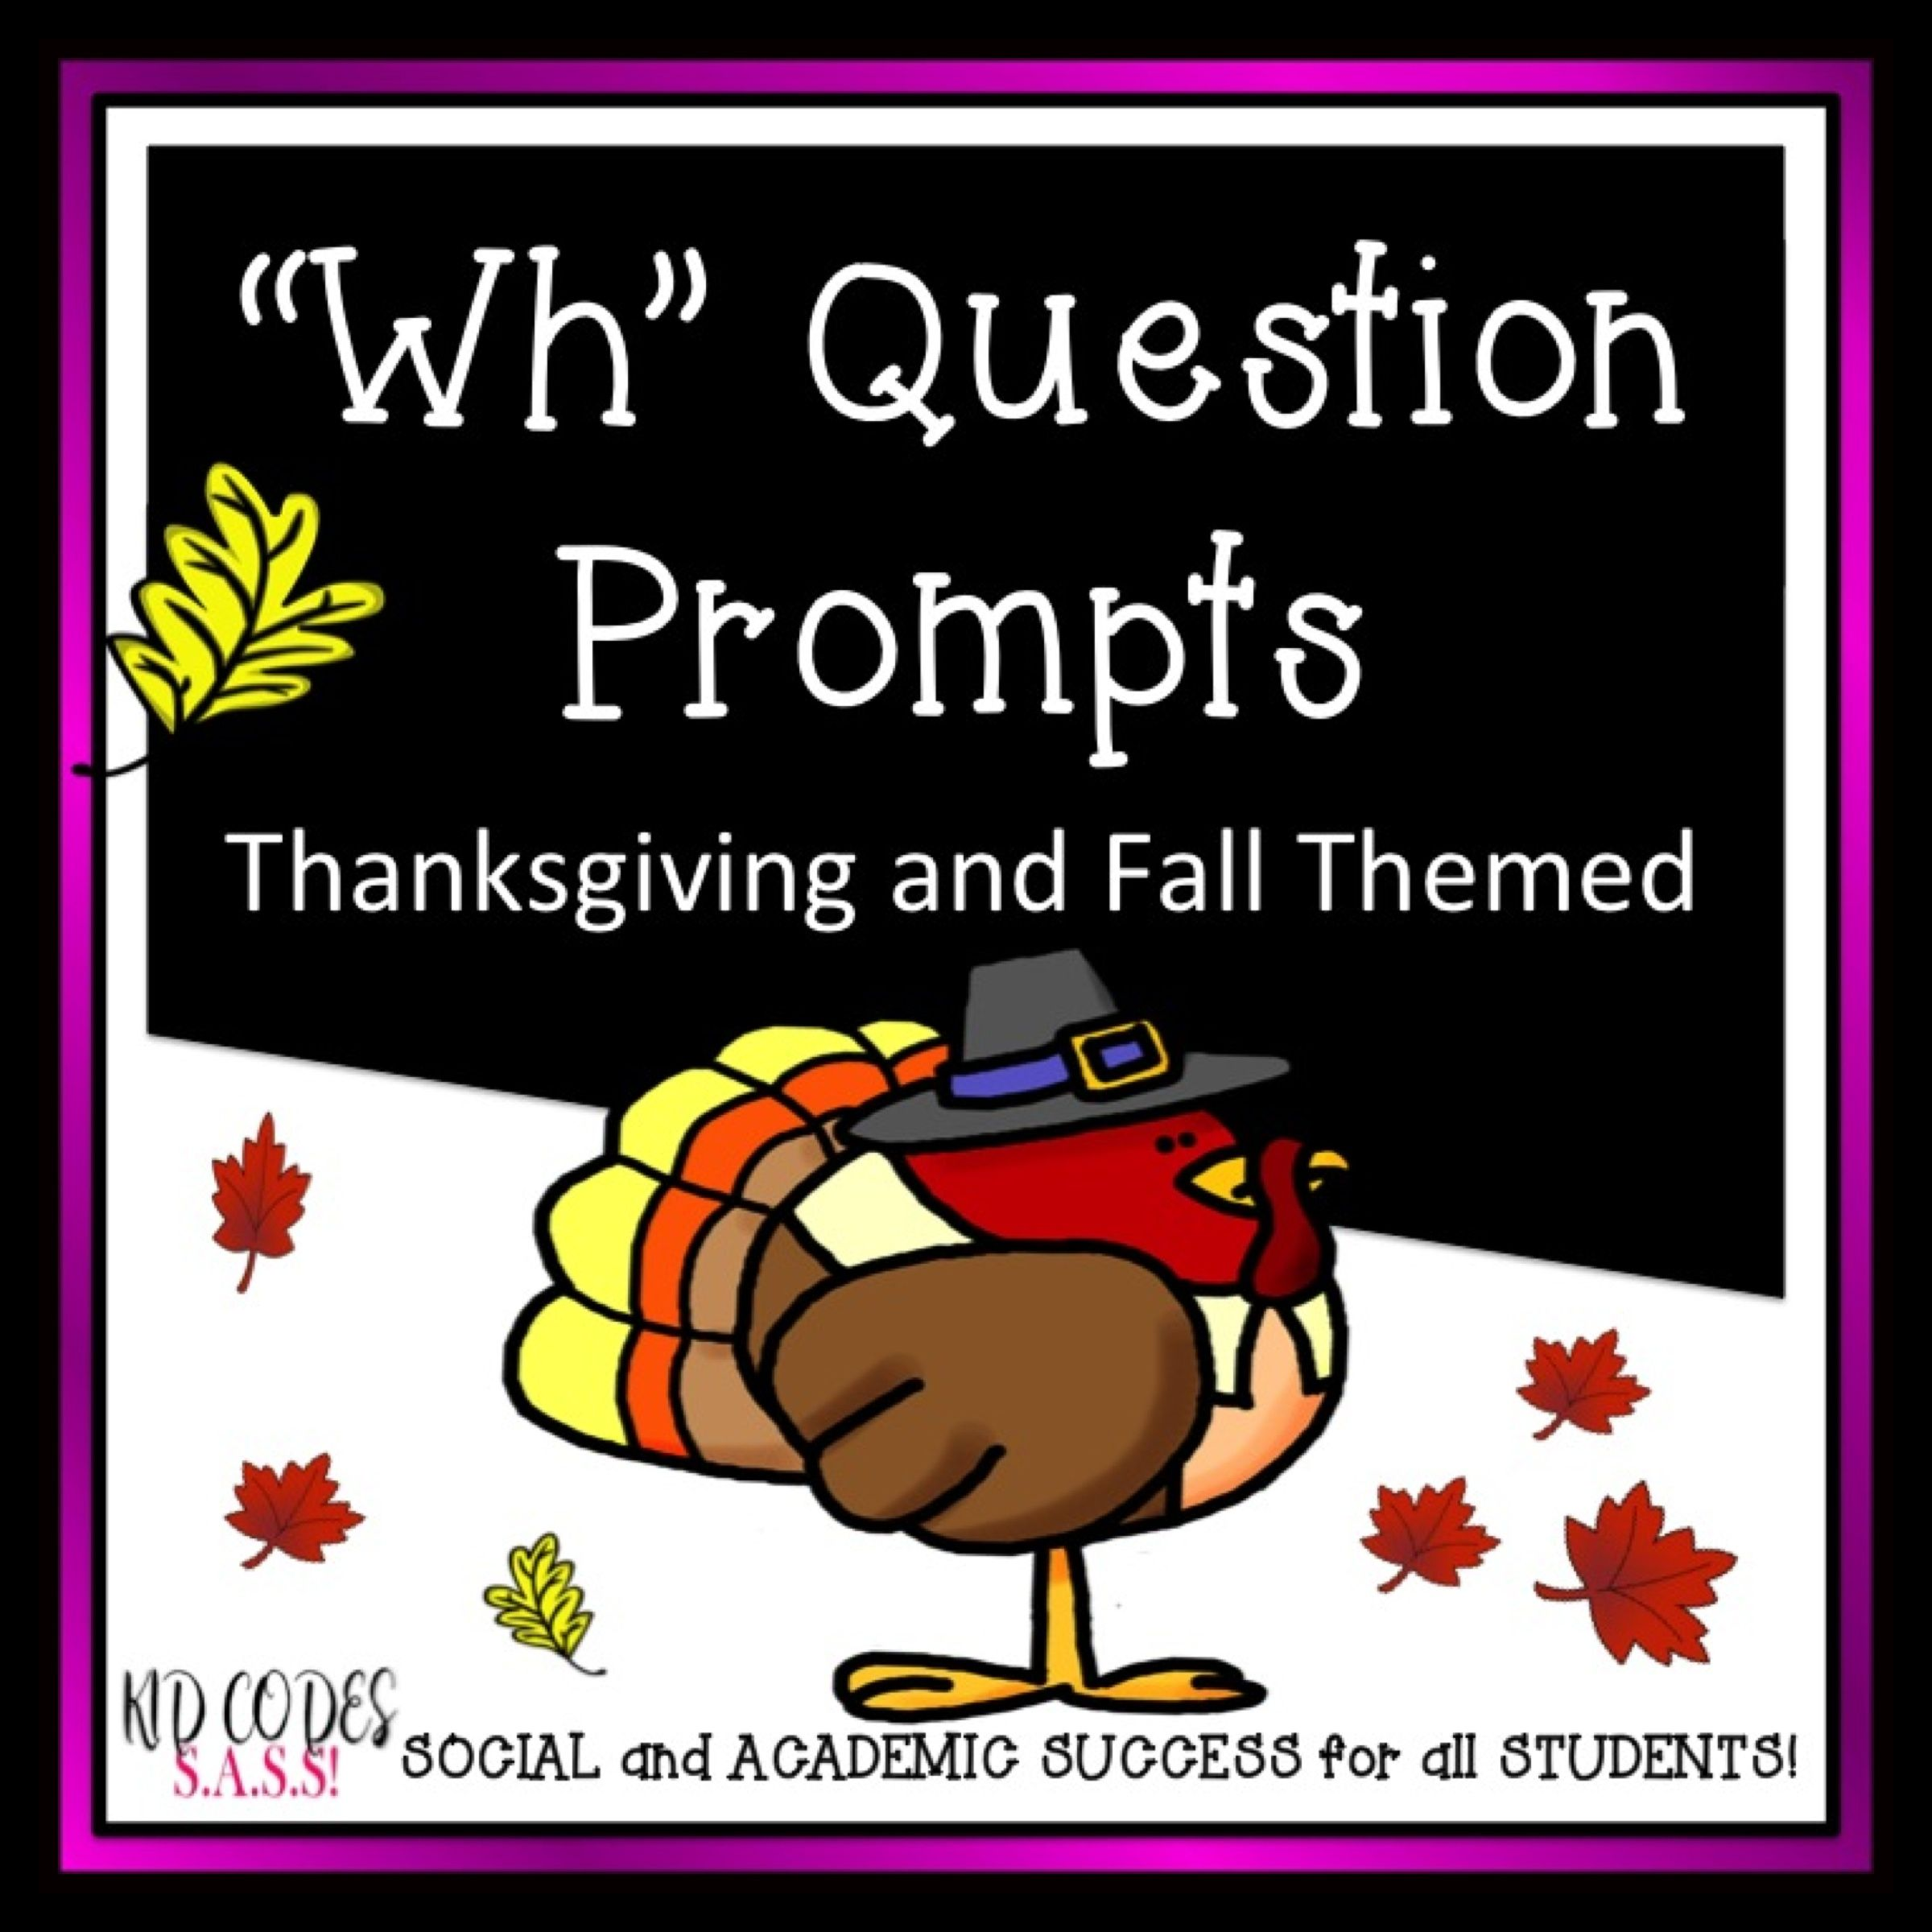 Wh Question Prompts Thanksgiving And Fall Themed